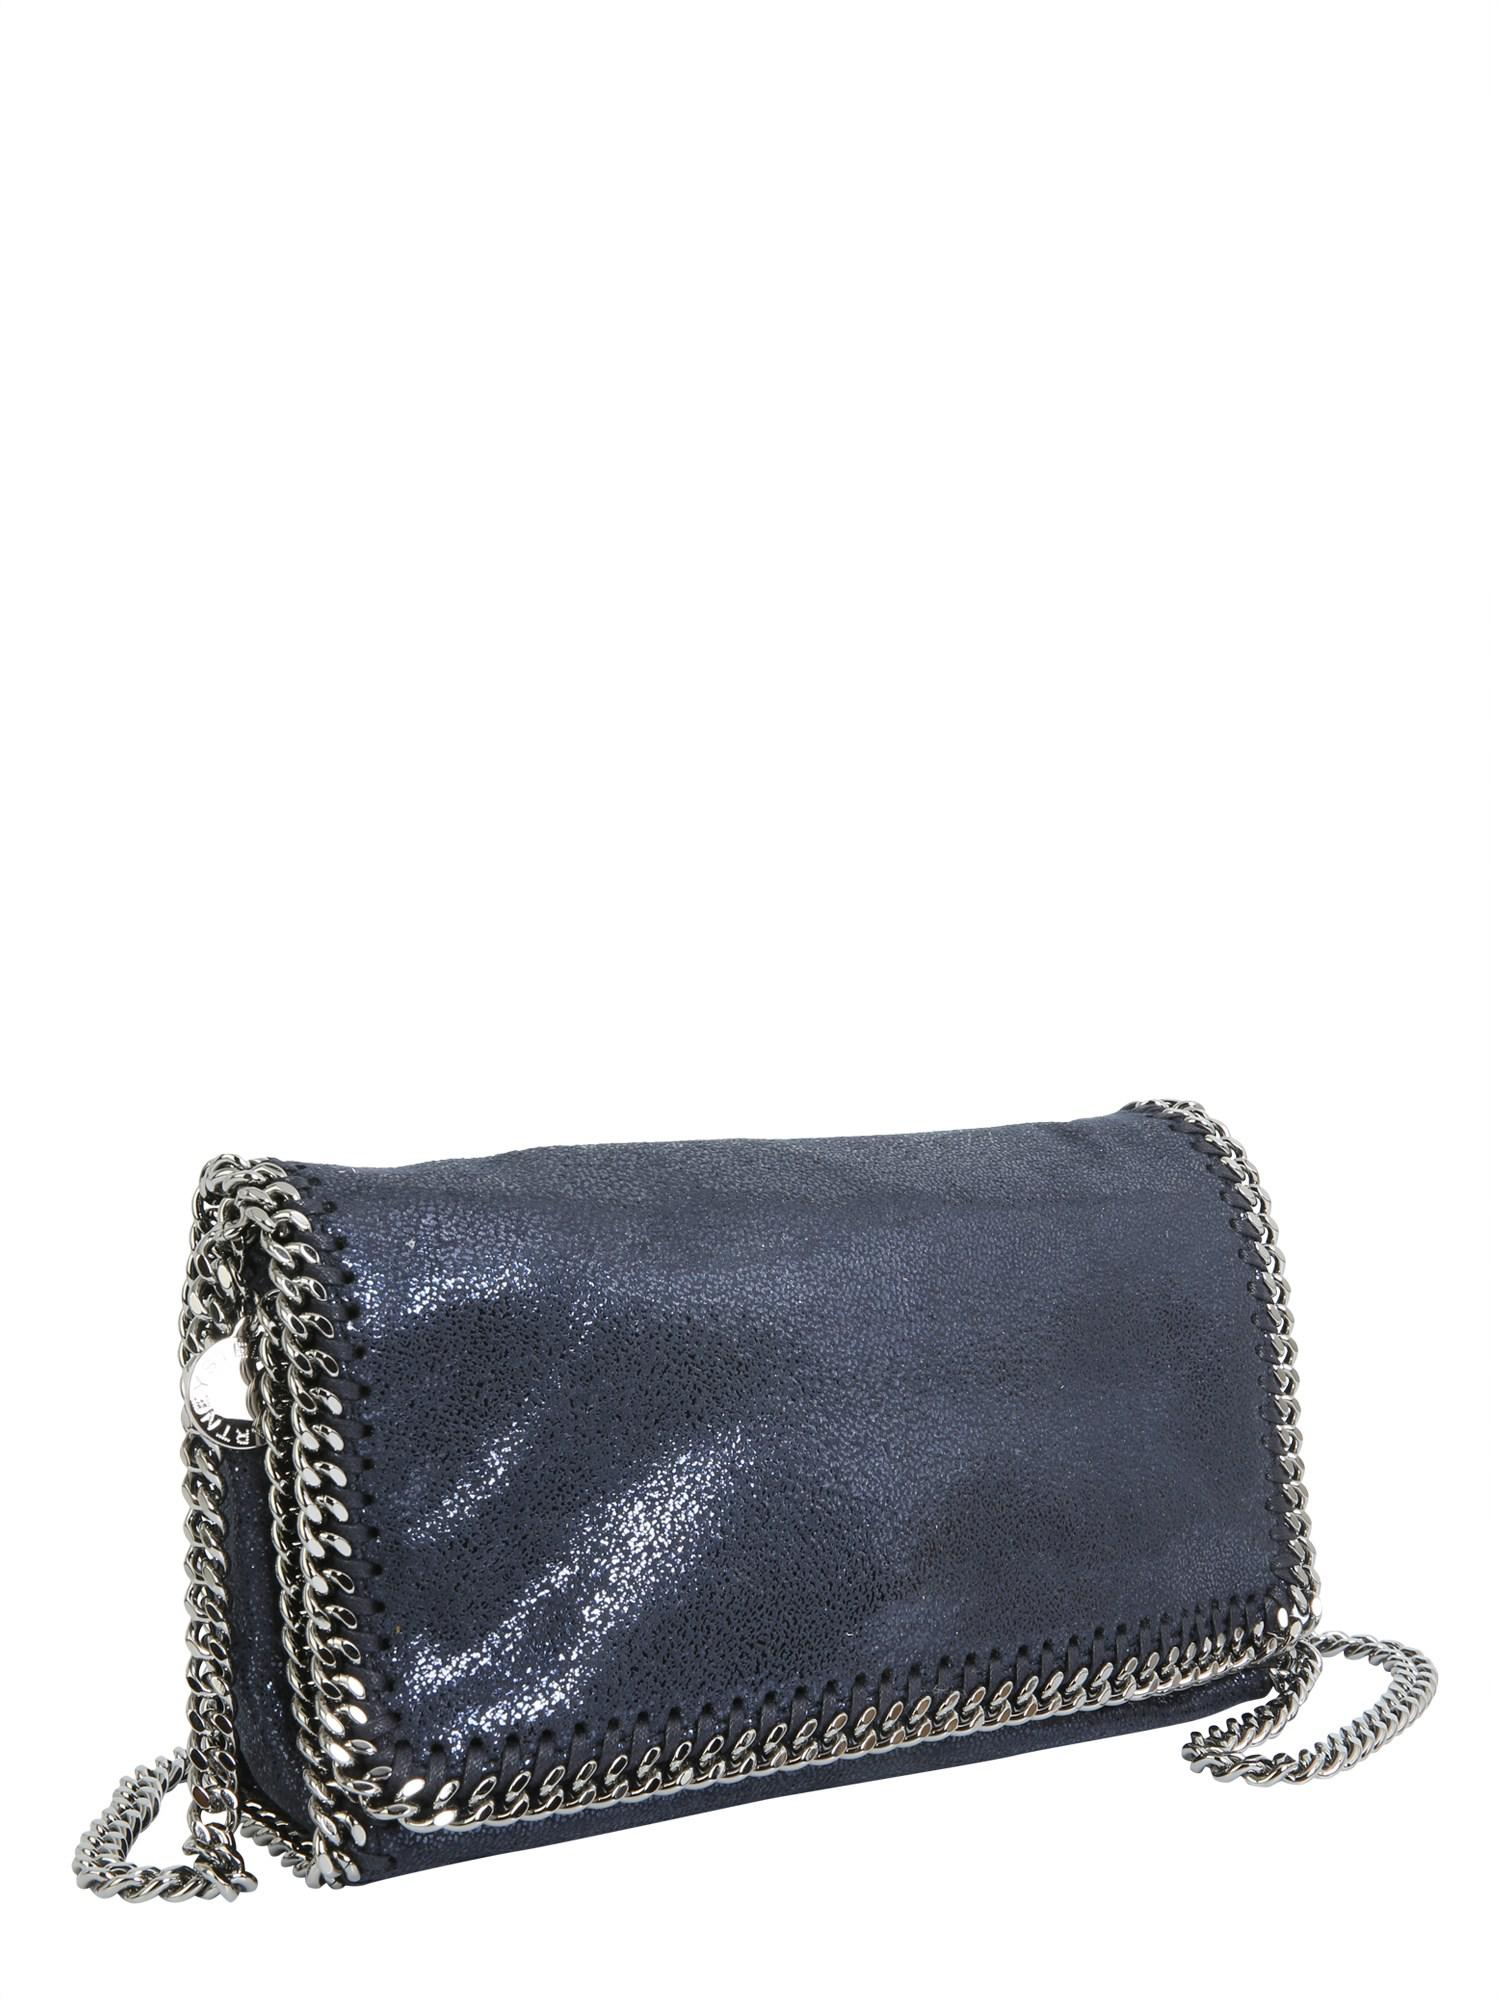 Stella McCartney Falabella Crossbody Bag in Black - Lyst a367b888c98ef